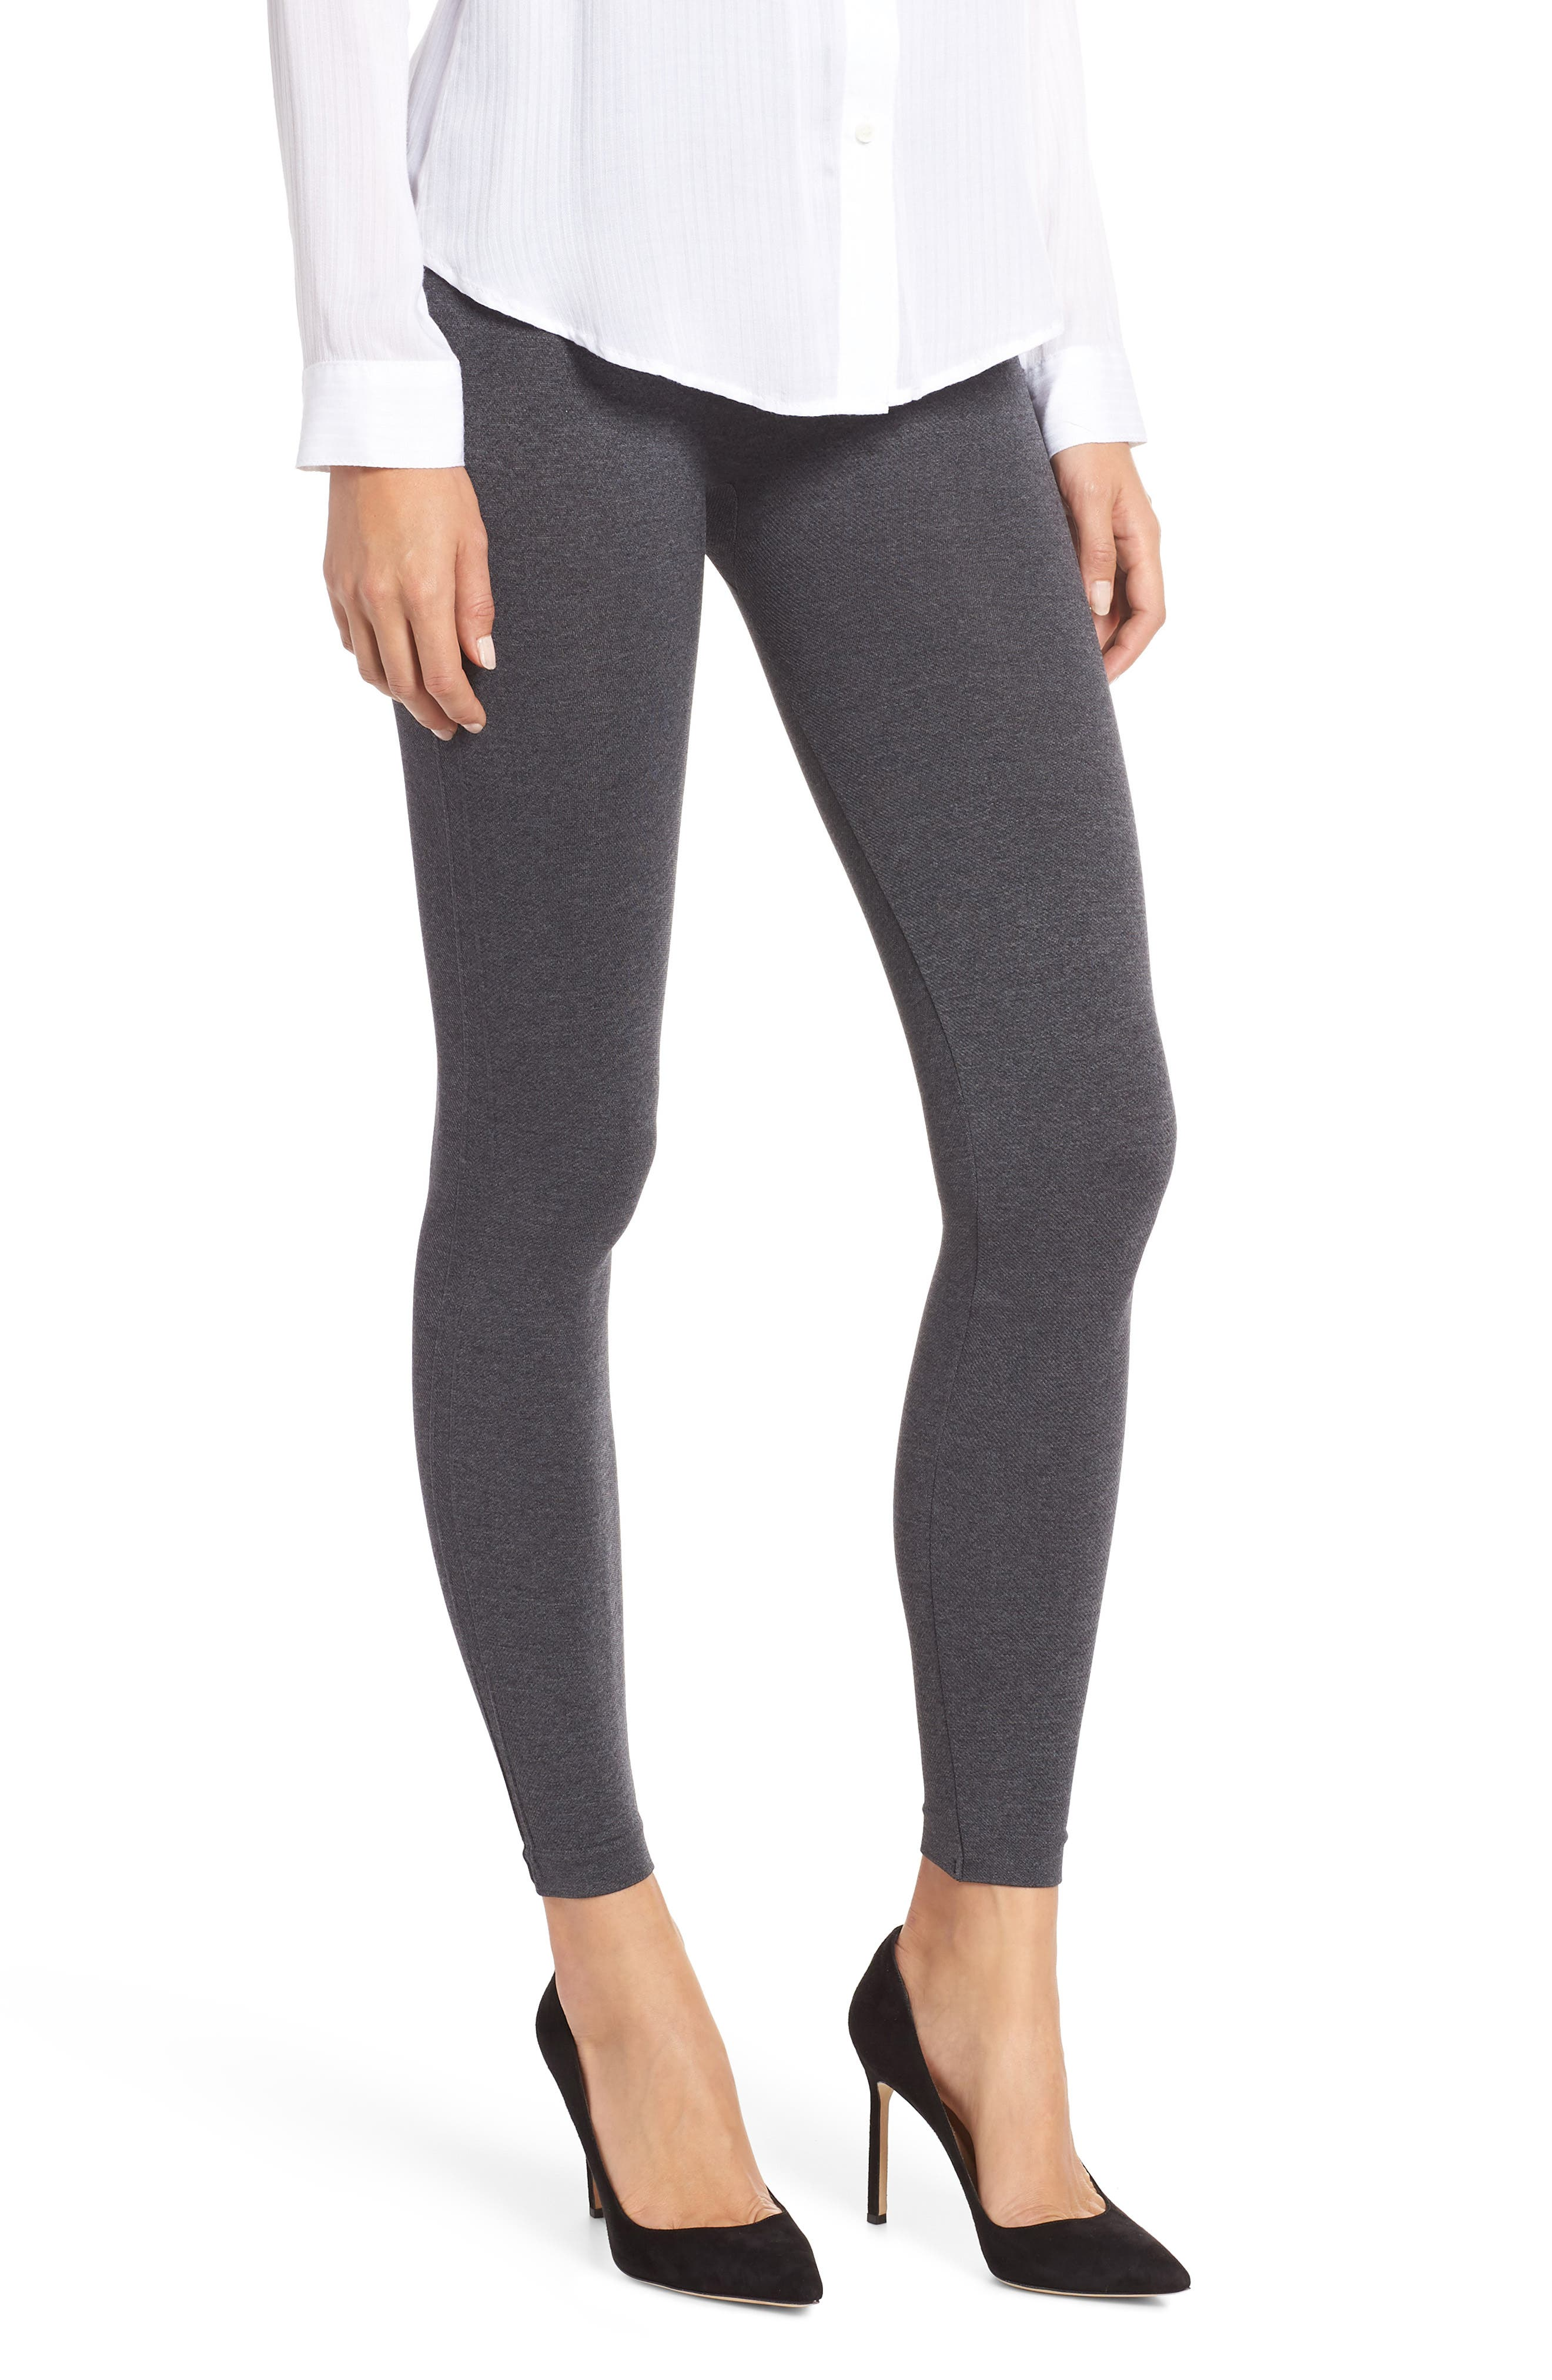 Look at Me Now' Seamless Leggings,                             Main thumbnail 1, color,                             HEATHER CHARCOAL